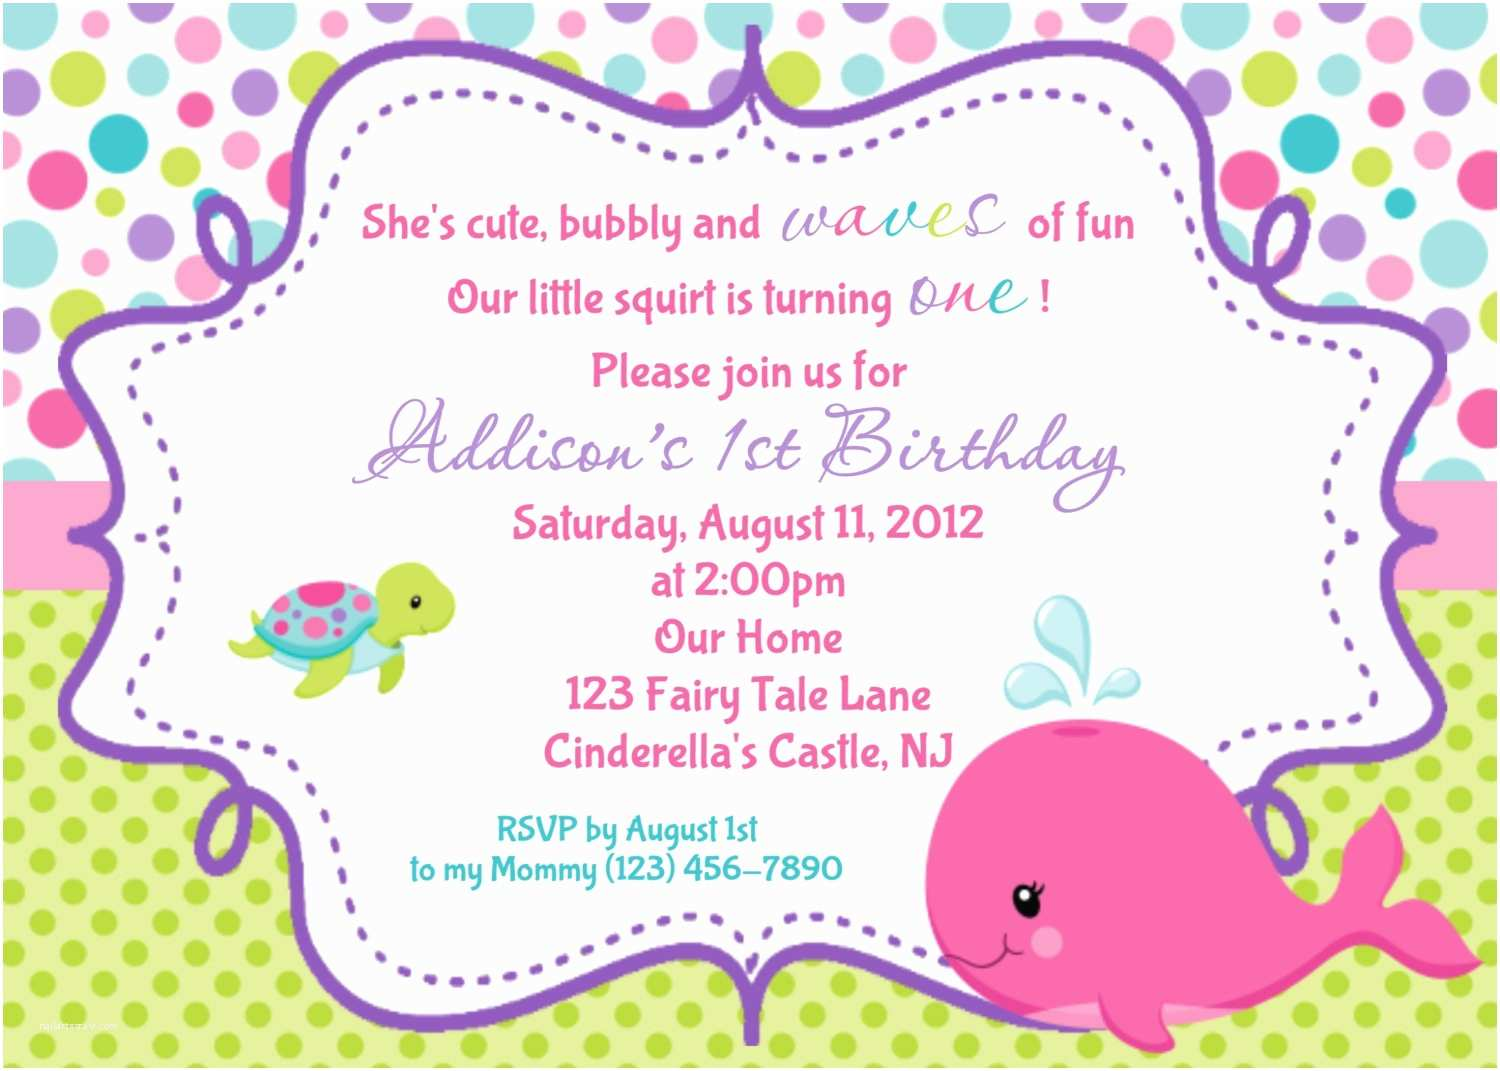 Customized Party Invitations Whale Birthday Invitation Personalized by Afairytalebeginning